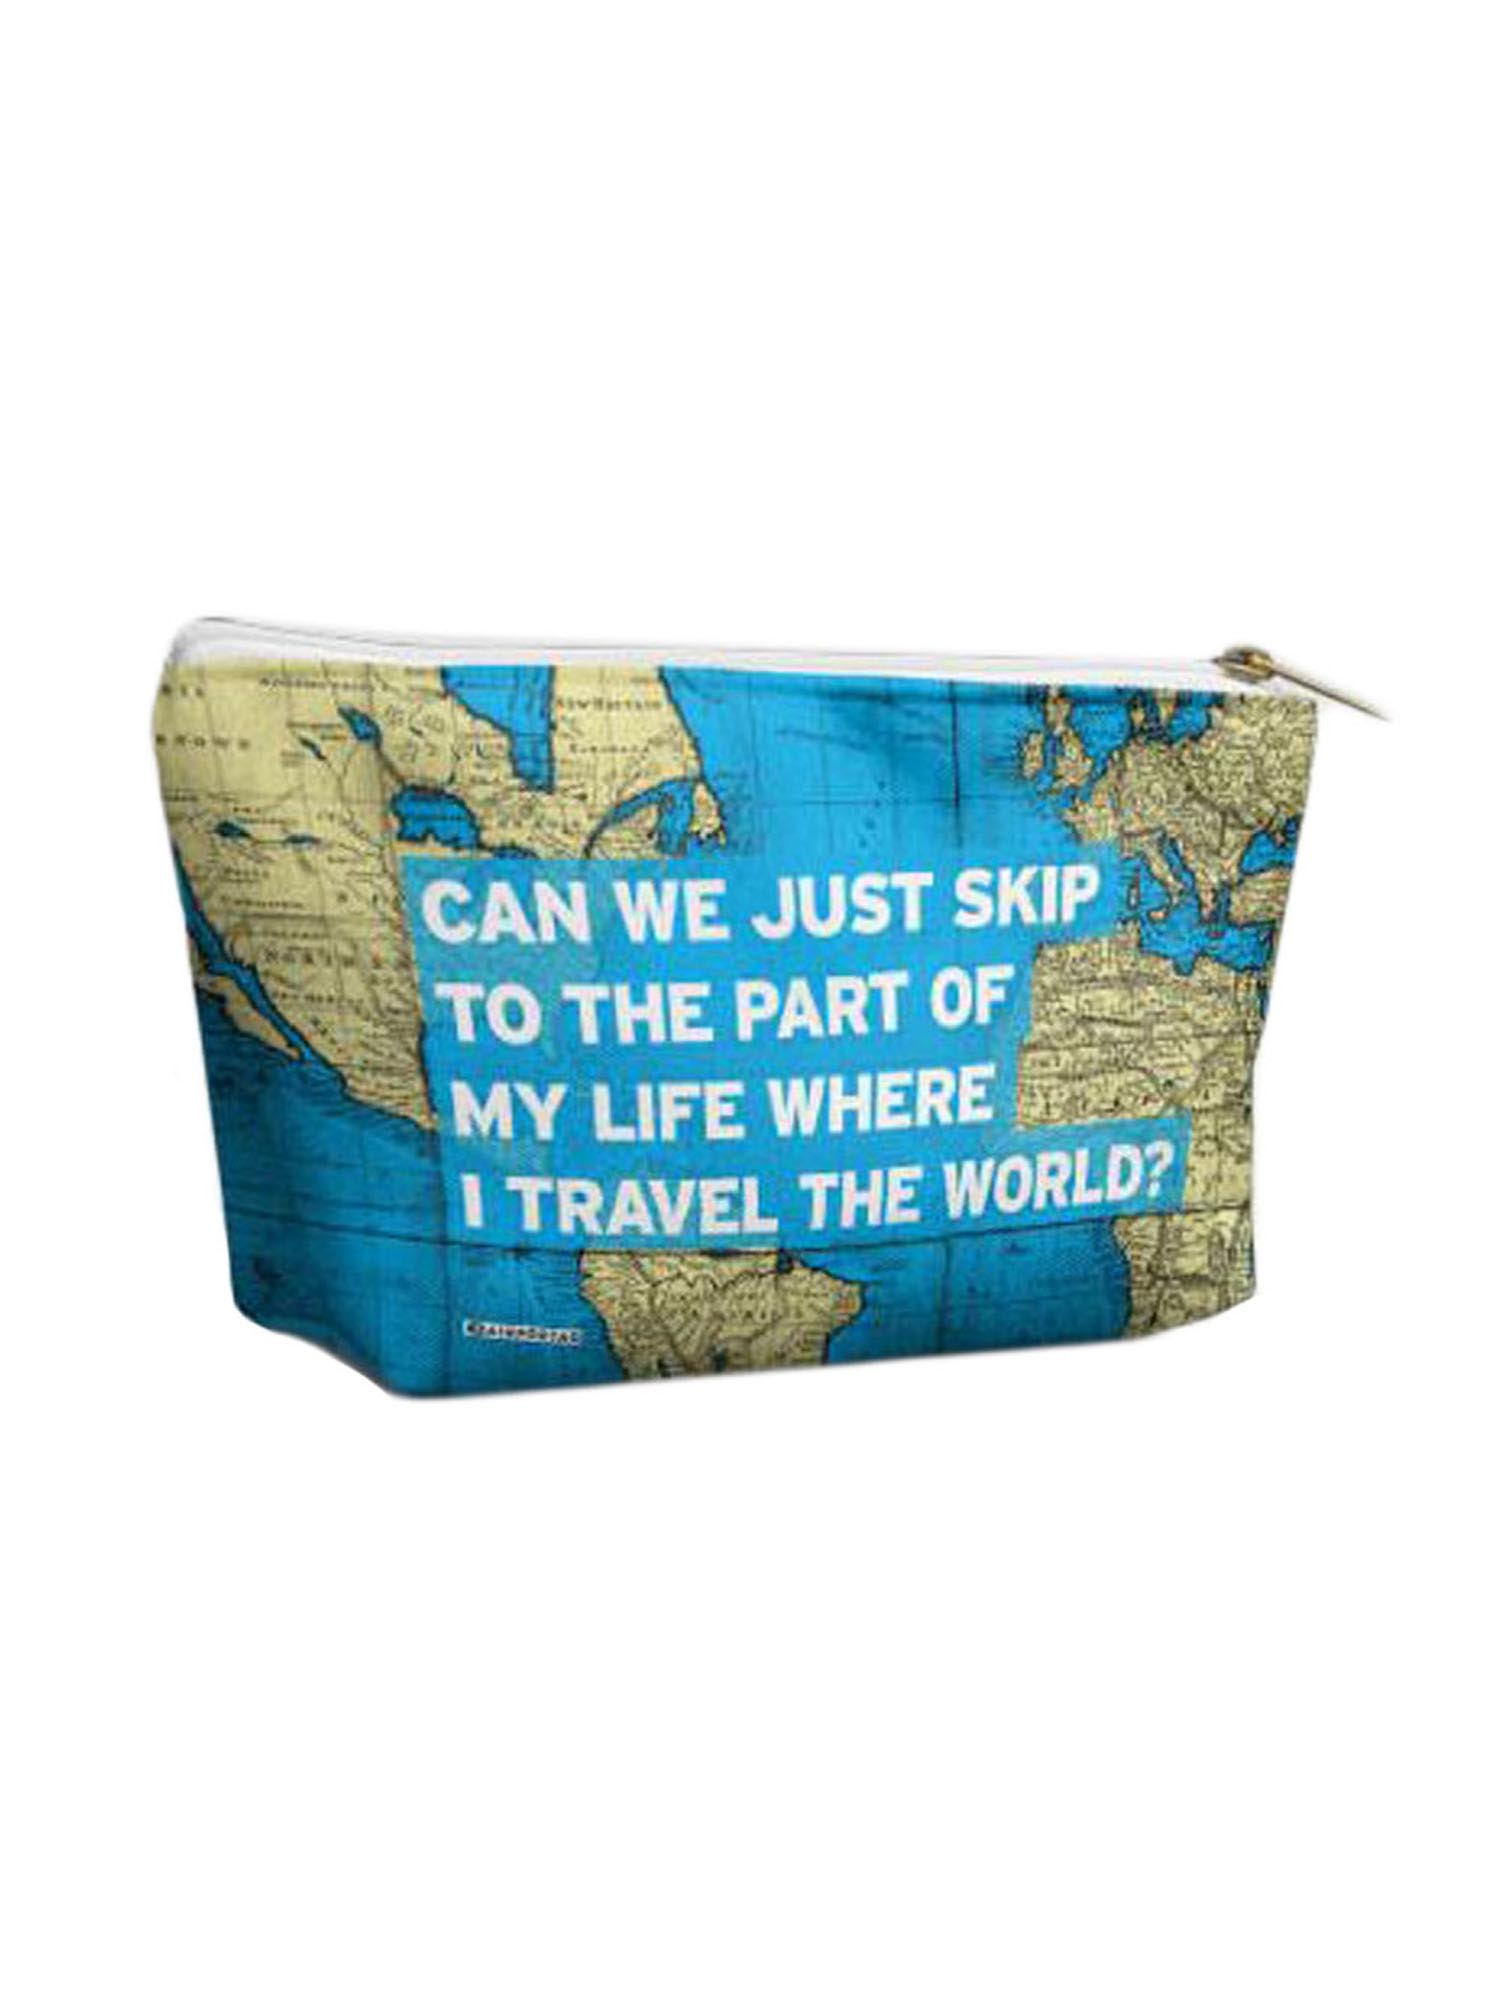 Airportag Travel The World Funny Airport Vegan Cosmetic Makeup Shave Bag Pouch